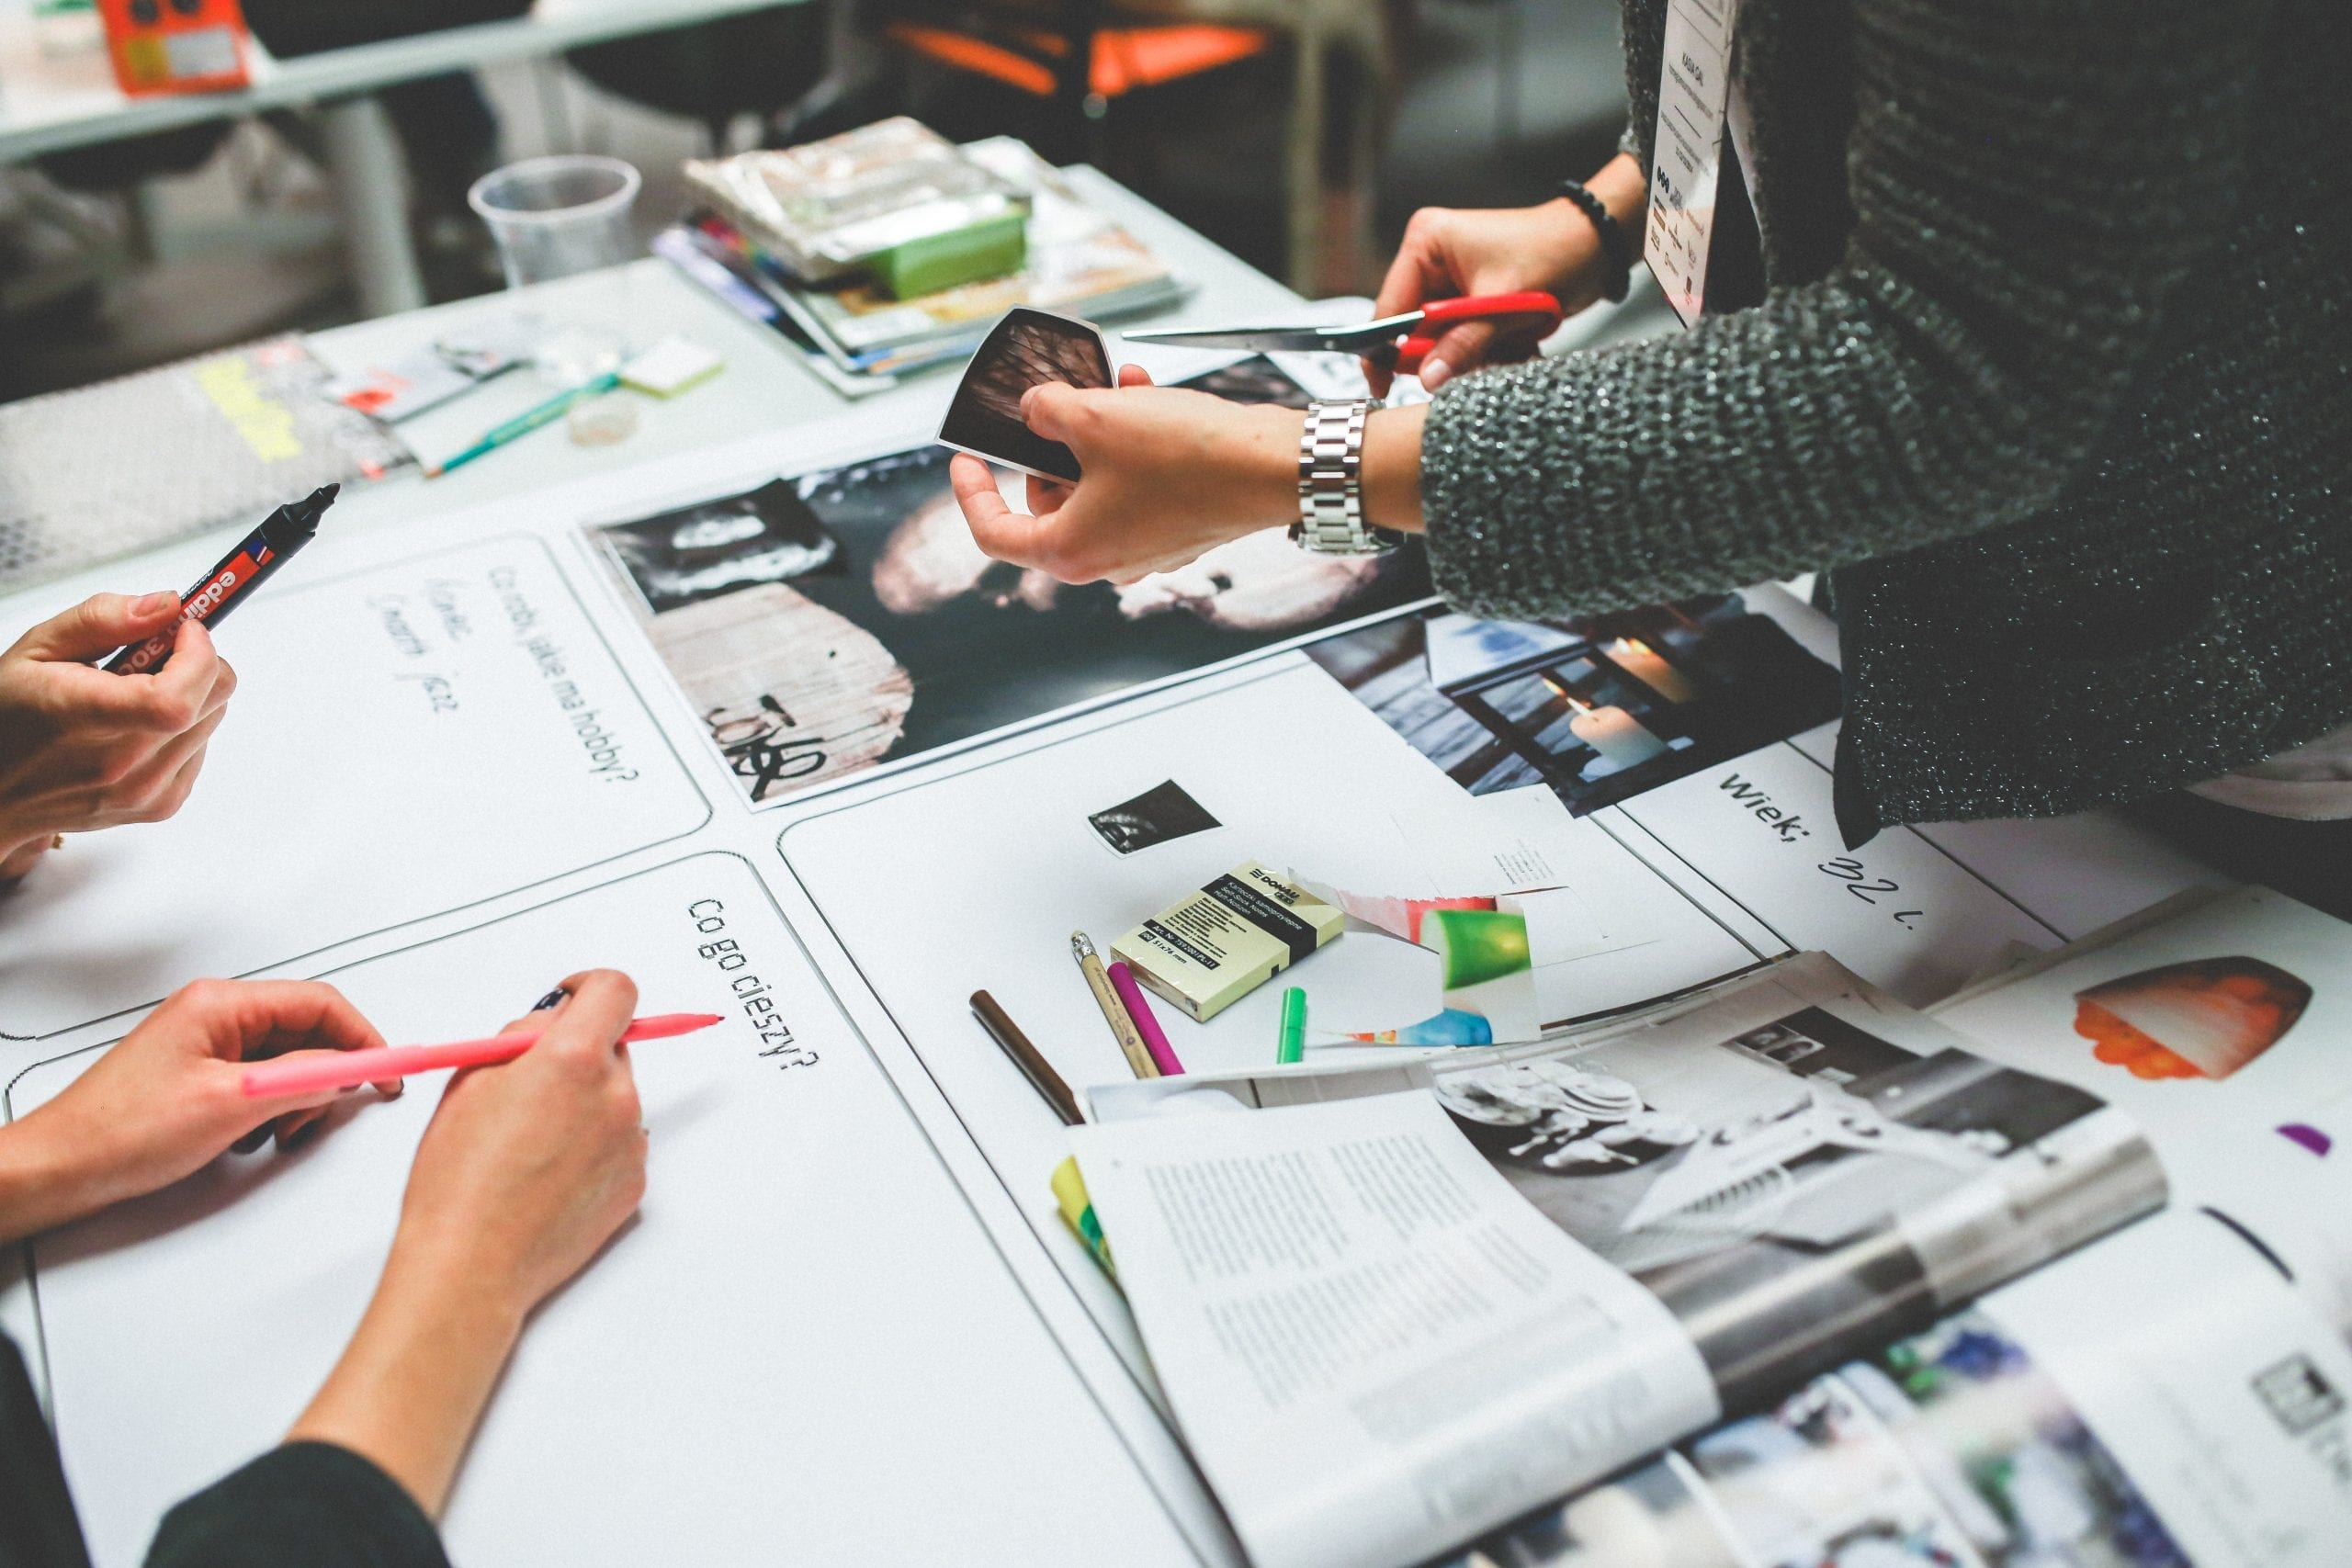 4 Ways Design Will Improve Your Business